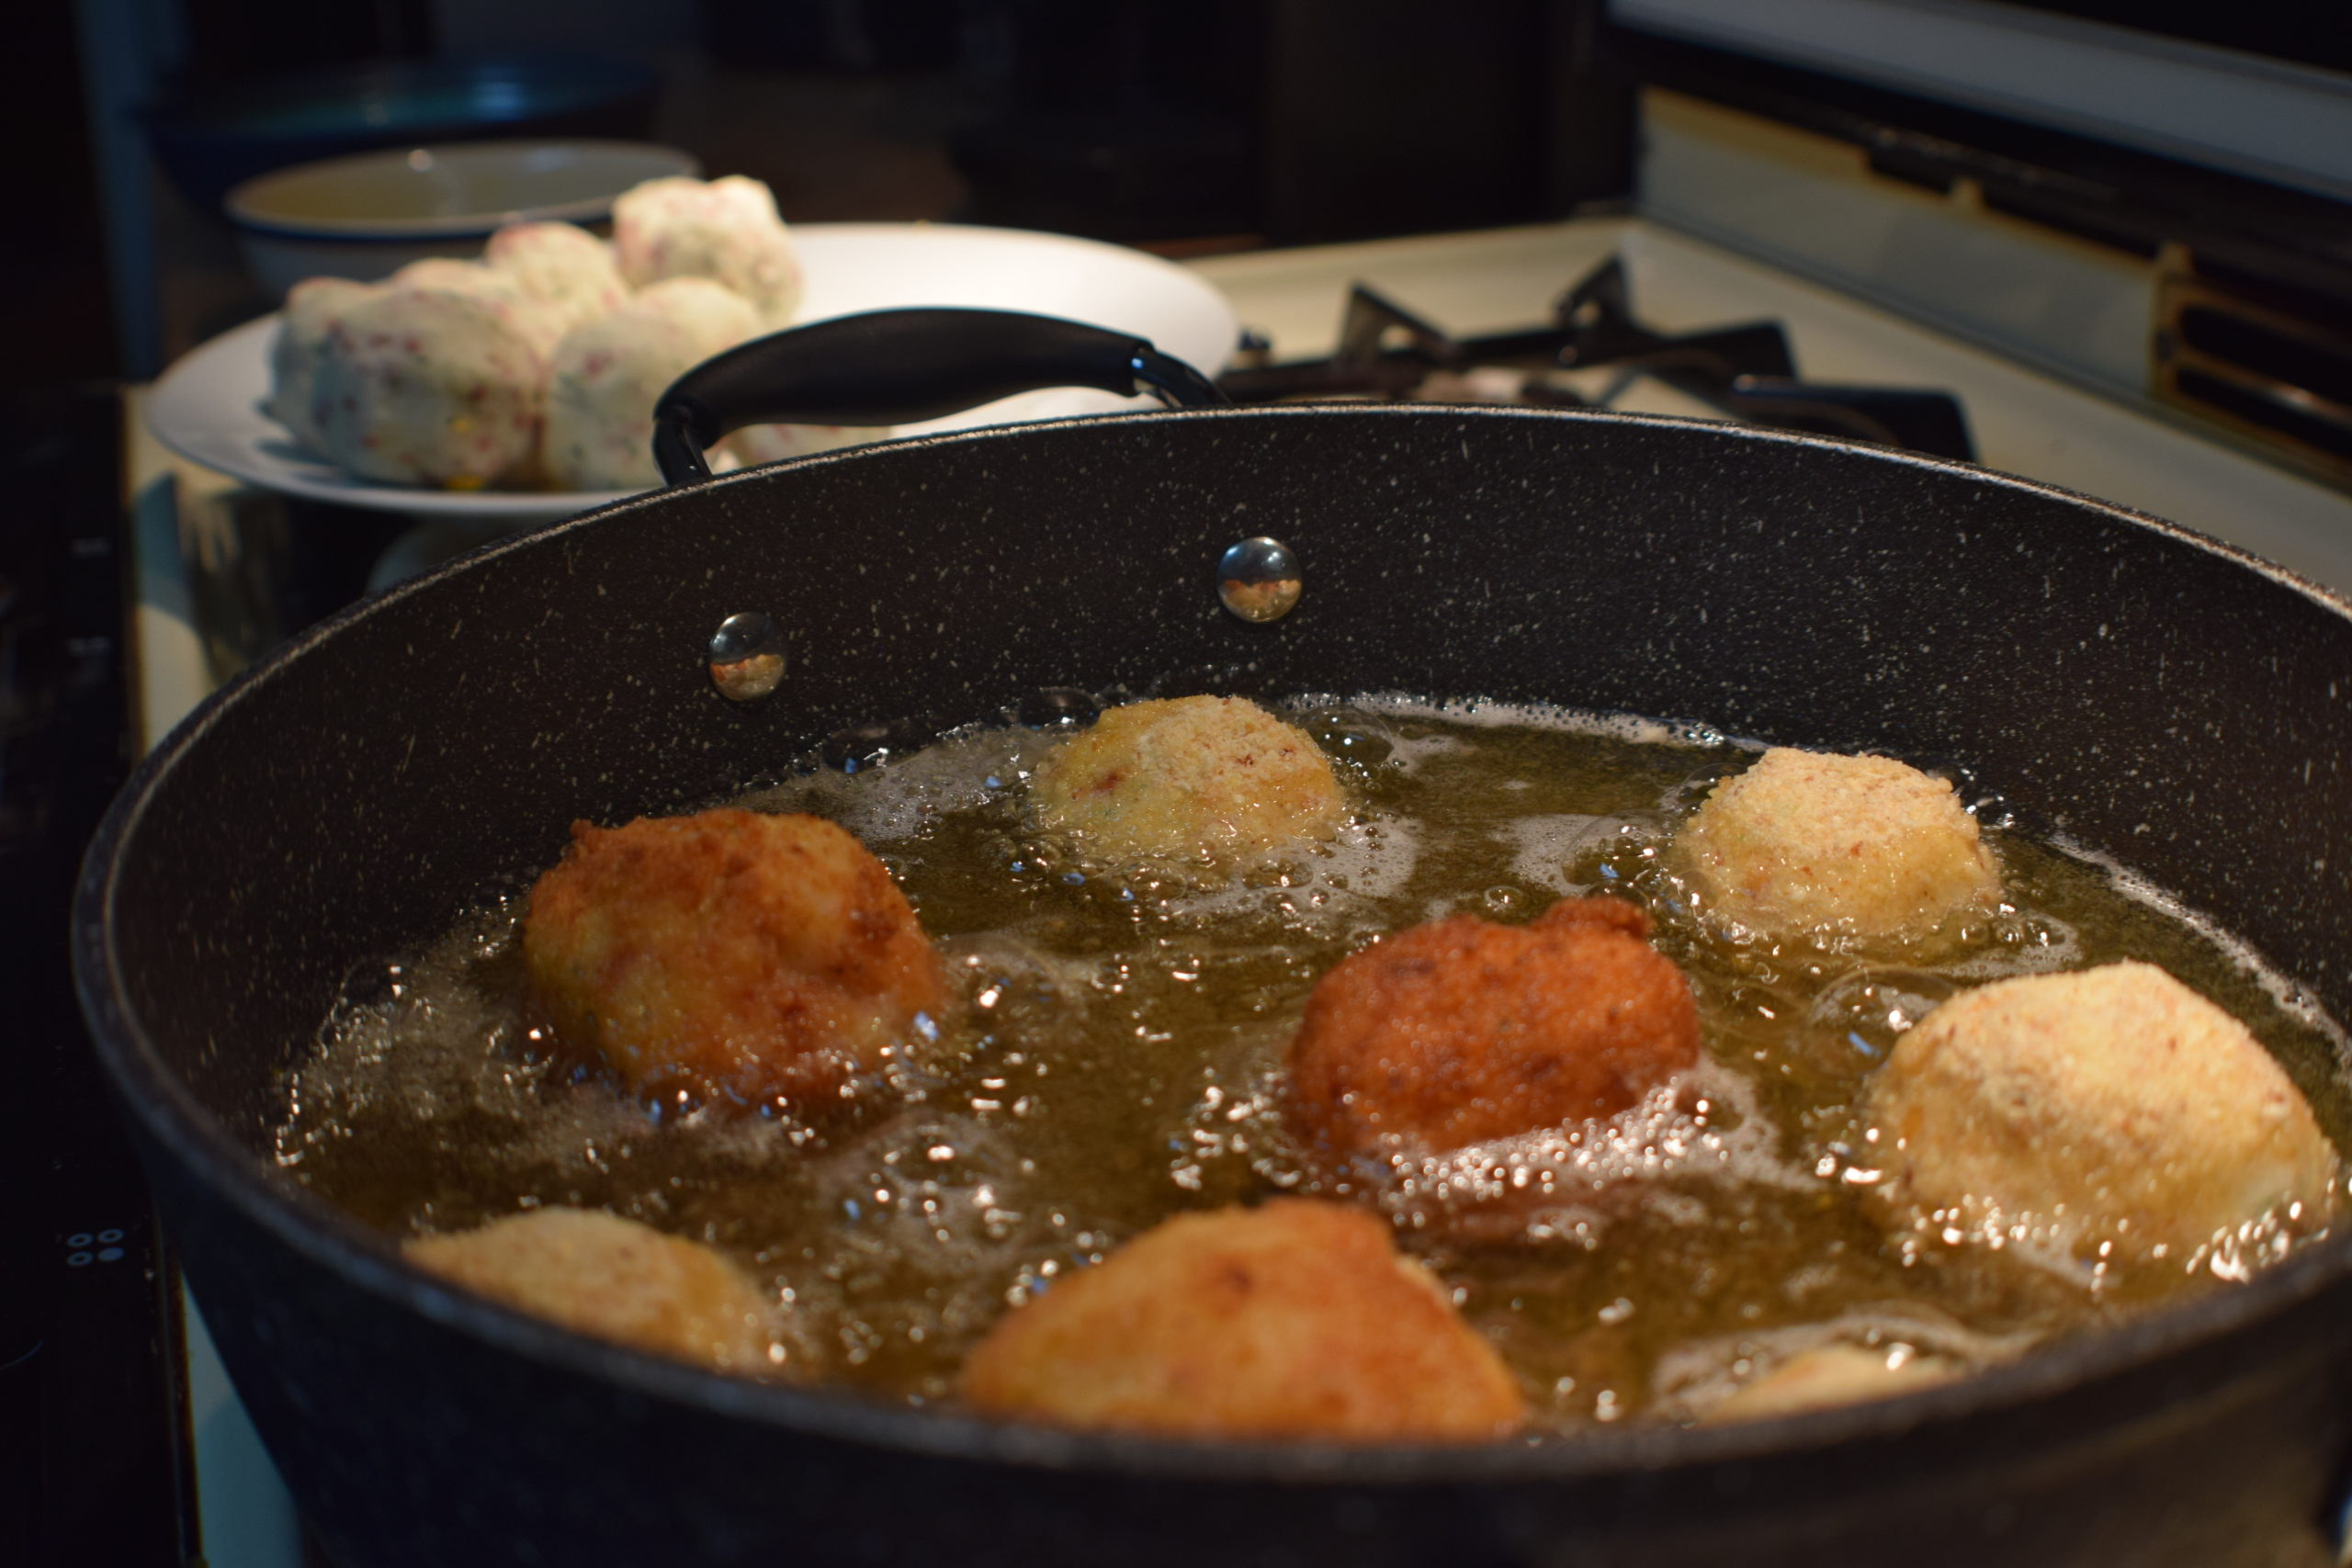 breaded potato balls cooking in hot oil on the stove